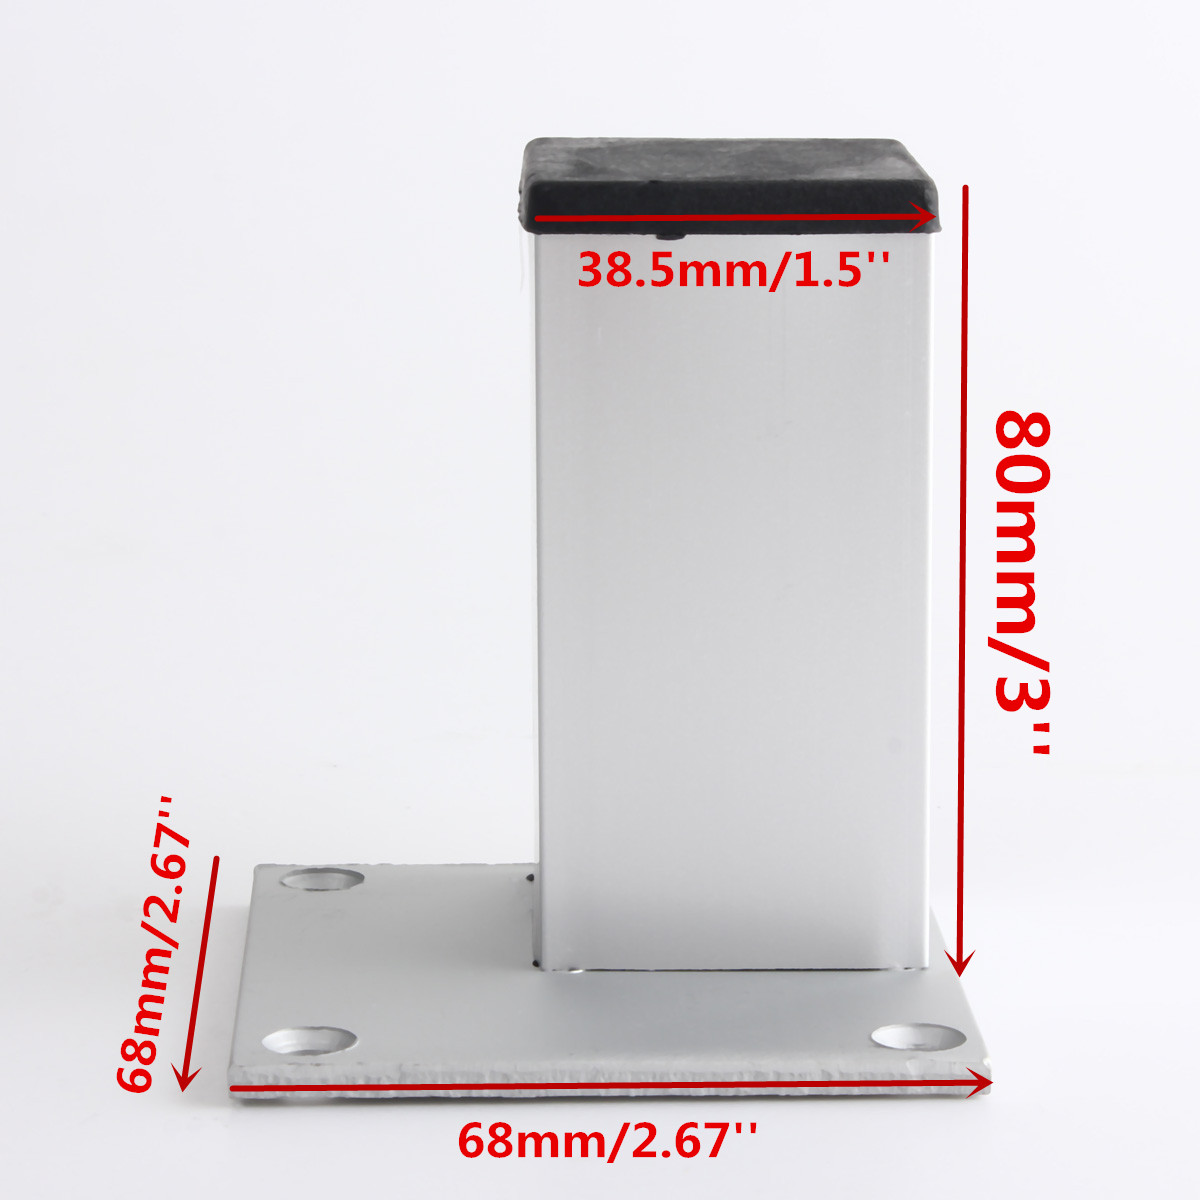 1x Metal Leg Square Aluminum For Furniture Table Cabinet Feet Stand New Ebay